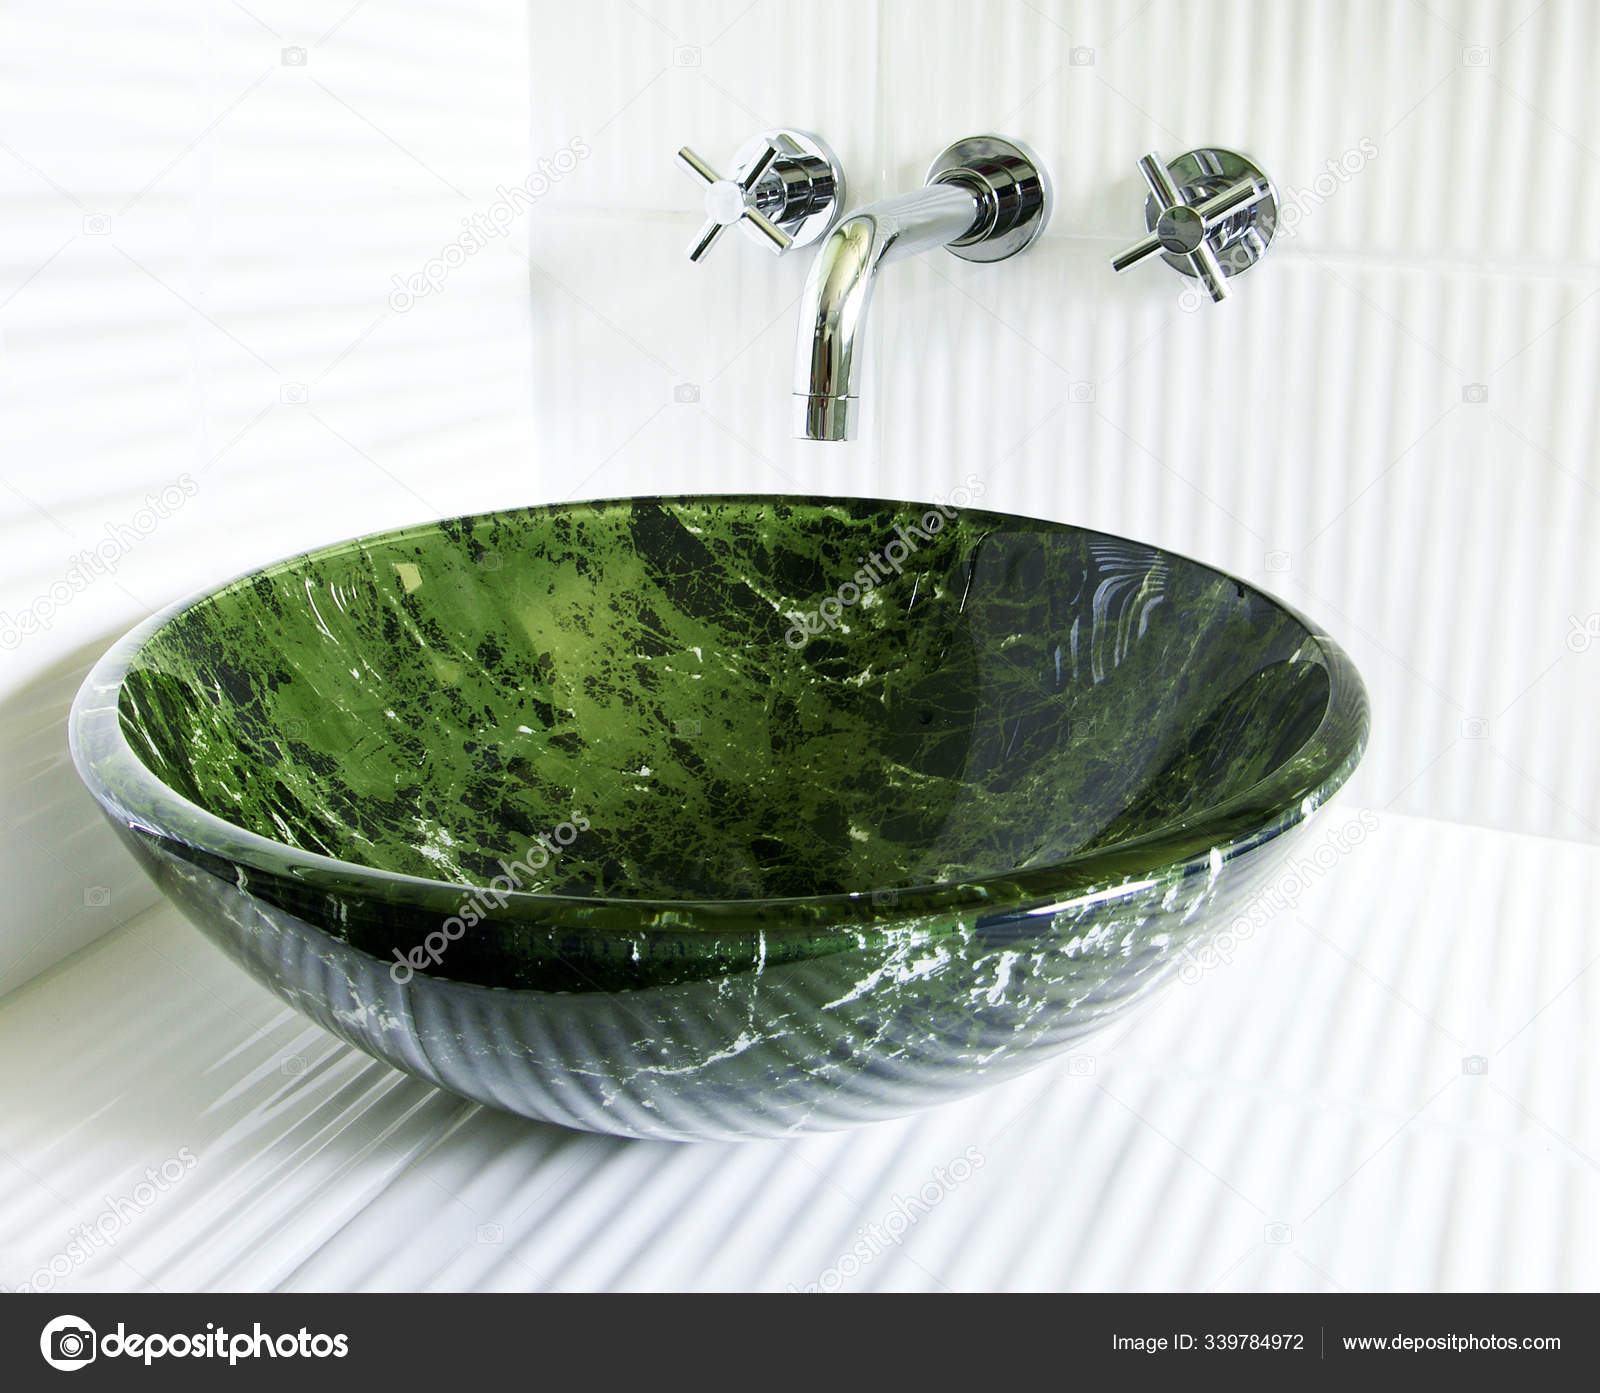 modern renovated bathroom tempered glass green marble imitation vessel sink stock photo image by c panthermediaseller 339784972